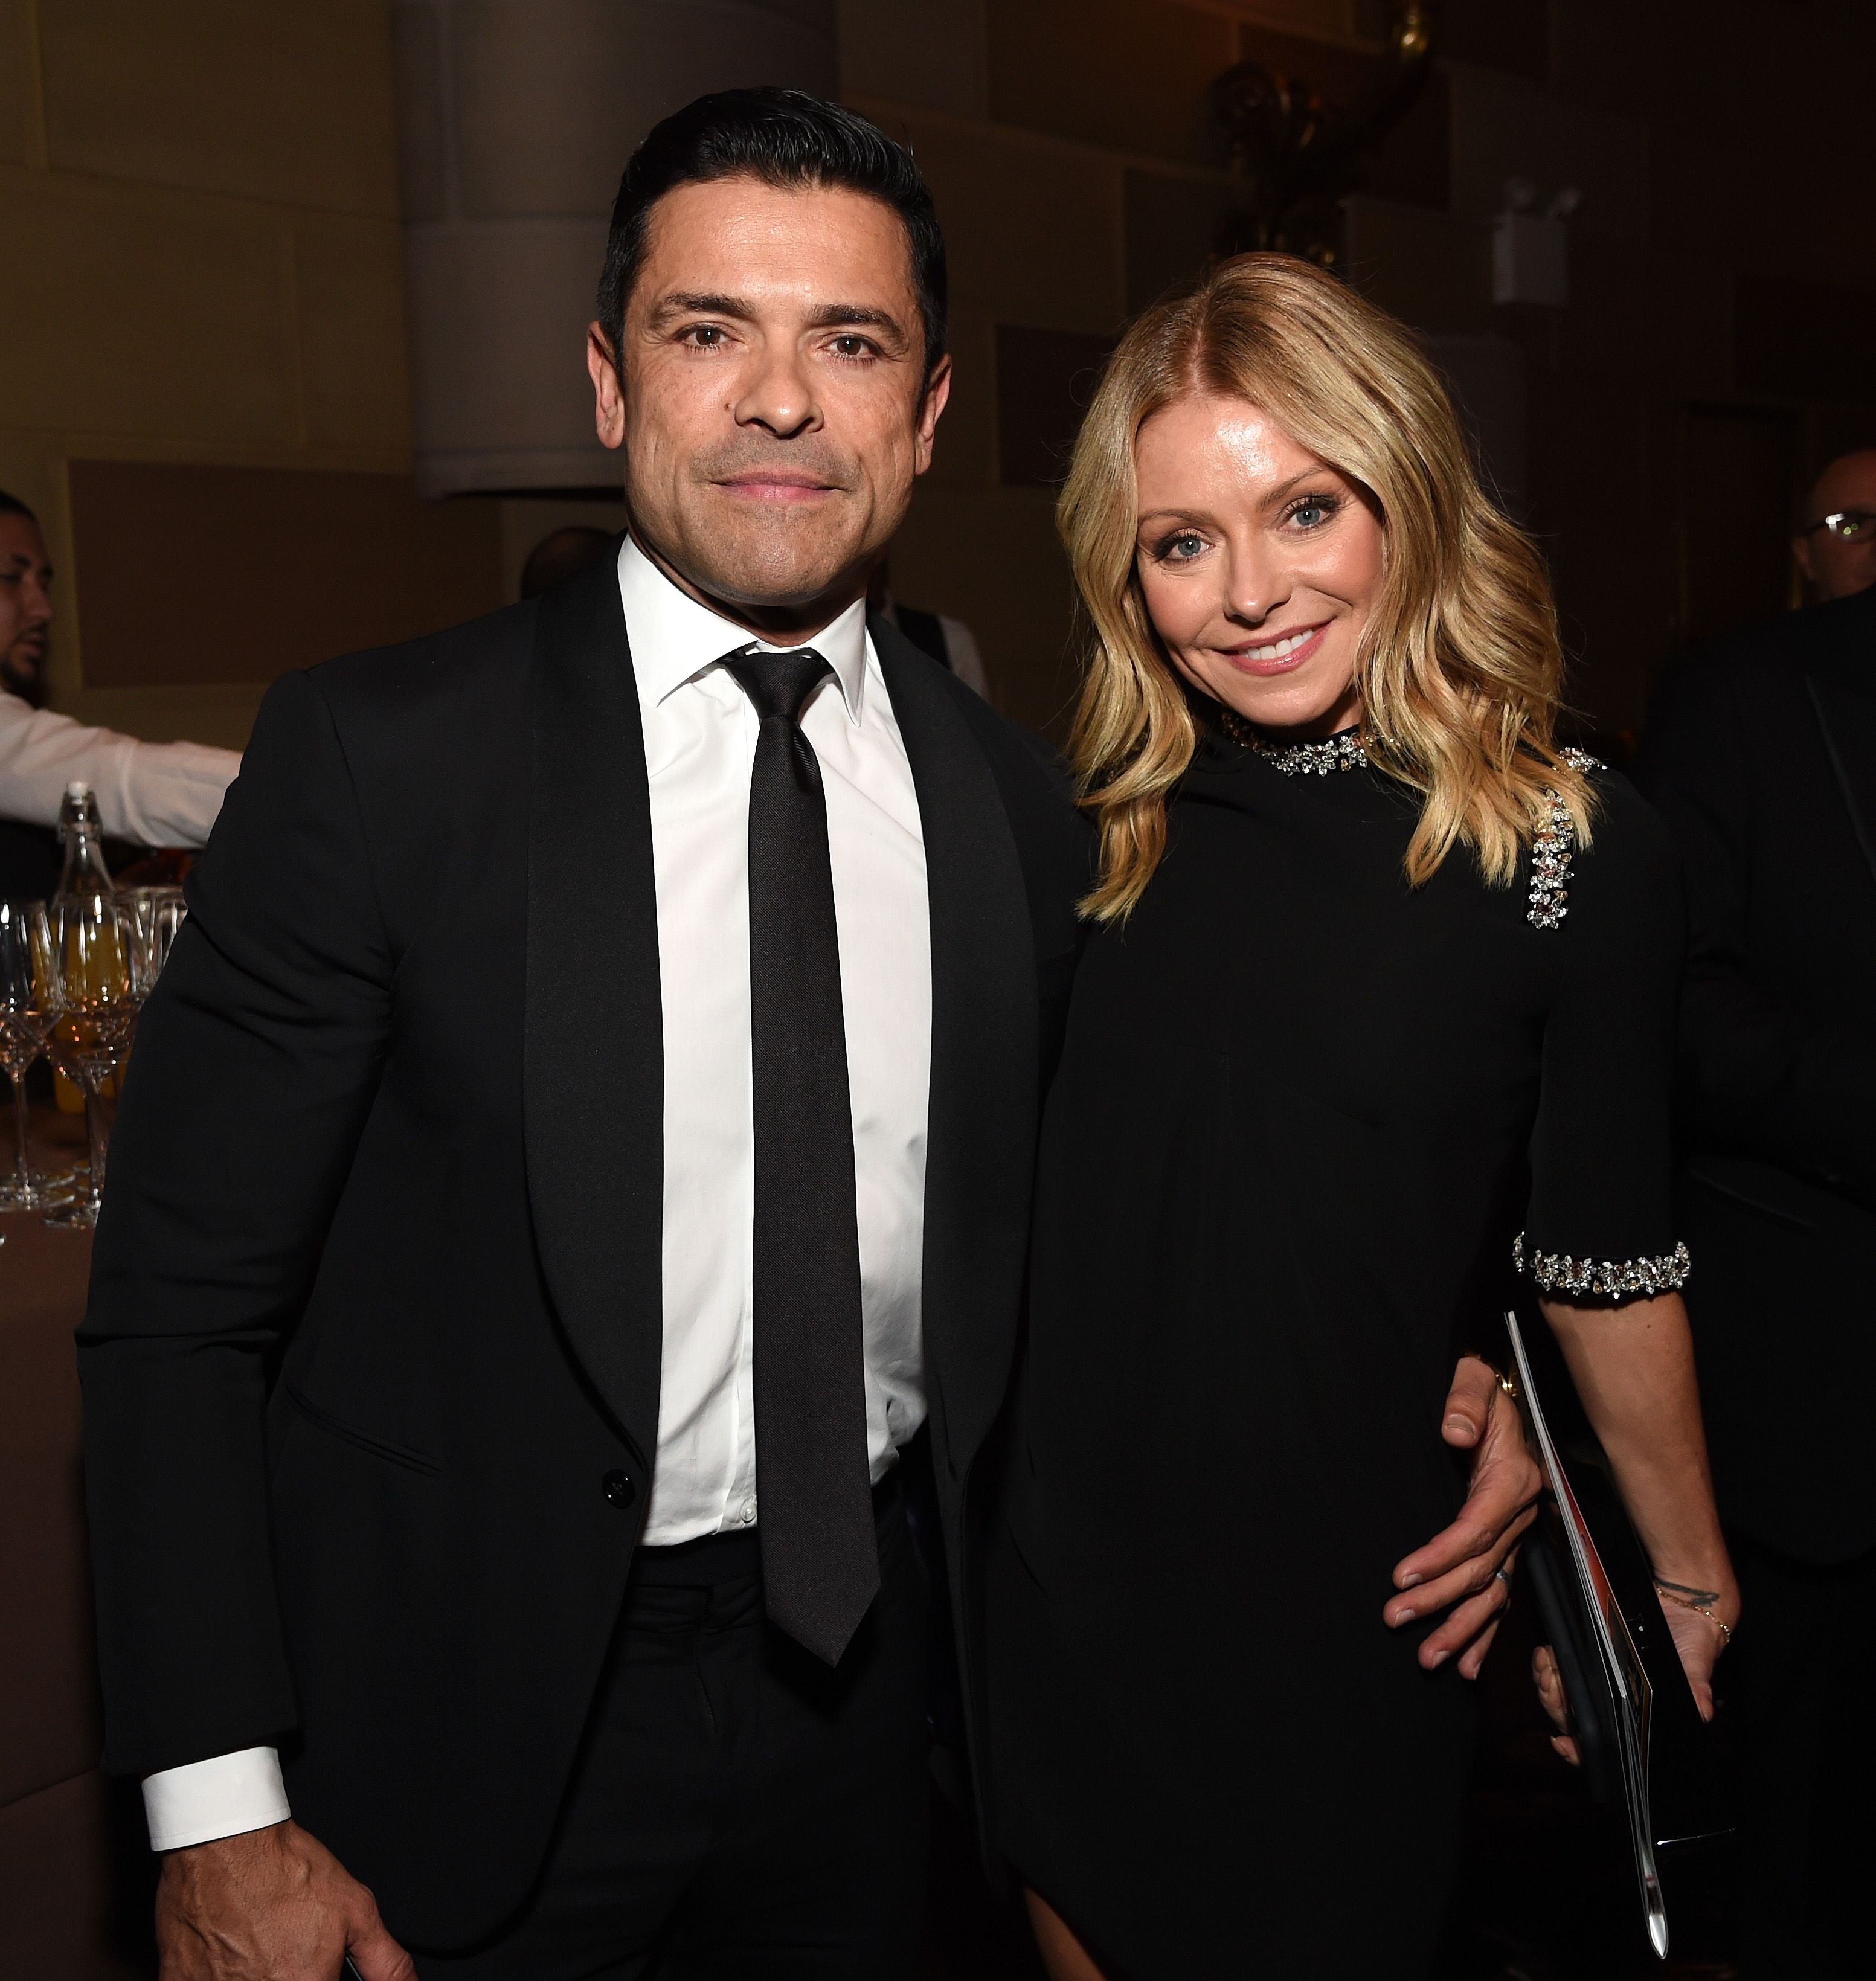 Mark Consuelos and Kelly Ripa pose during the Radio Hall of Fame Class of 2019 Induction Ceremony at Gotham Hall on November 08, 2019. | Photo: Getty Images